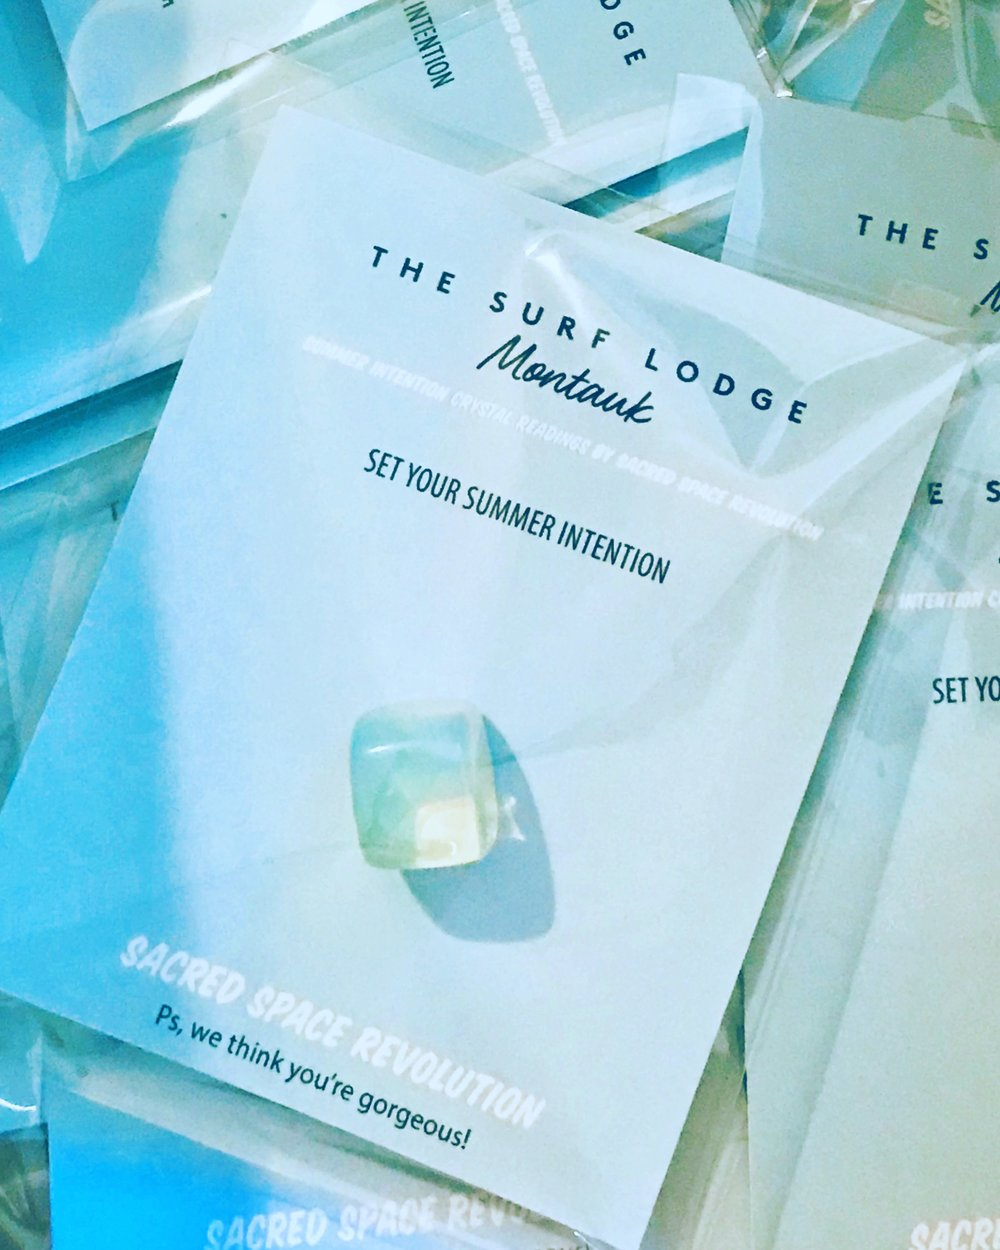 Custom Crystals   We've worked with Brands like Surflodge , Almay, and Bandier to create a special experience for their customers. Offering their guest a gift of intention setting and positive affirmations is meaningful and memorable. It also creates a positive shift for everyone.